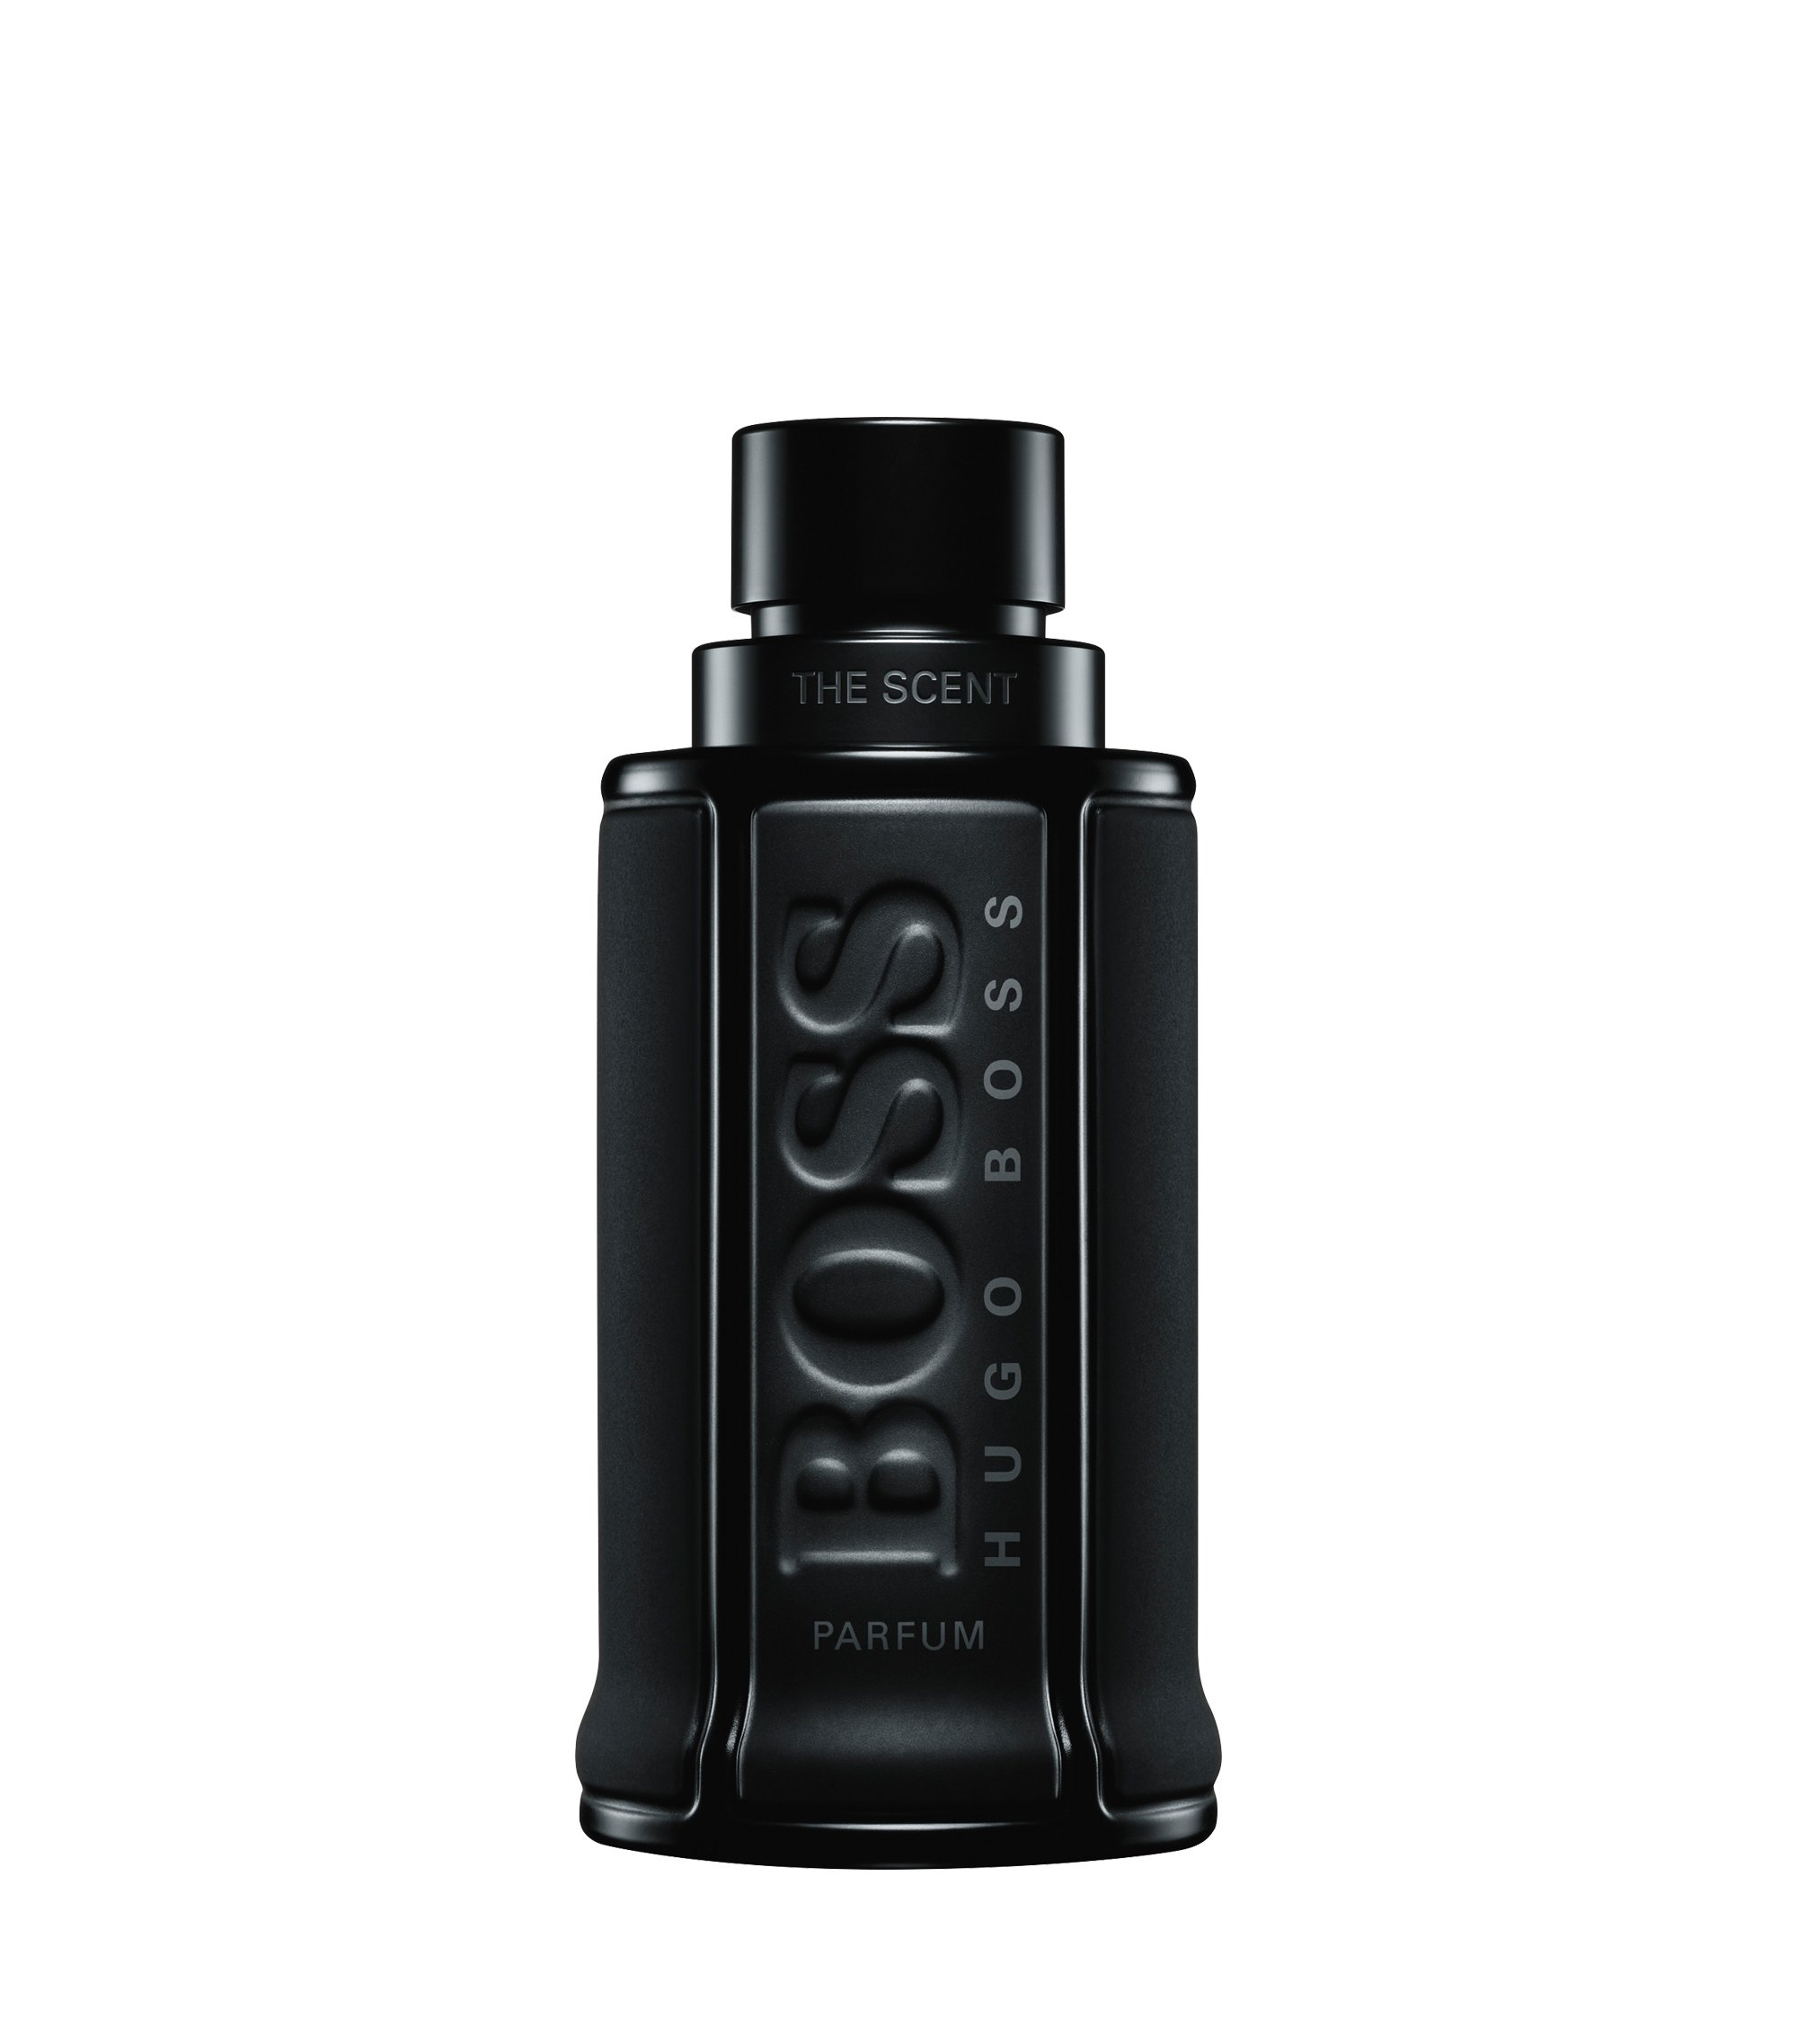 BOSS The Scent For Him Eau de Parfum 100 ml, Assorted-Pre-Pack